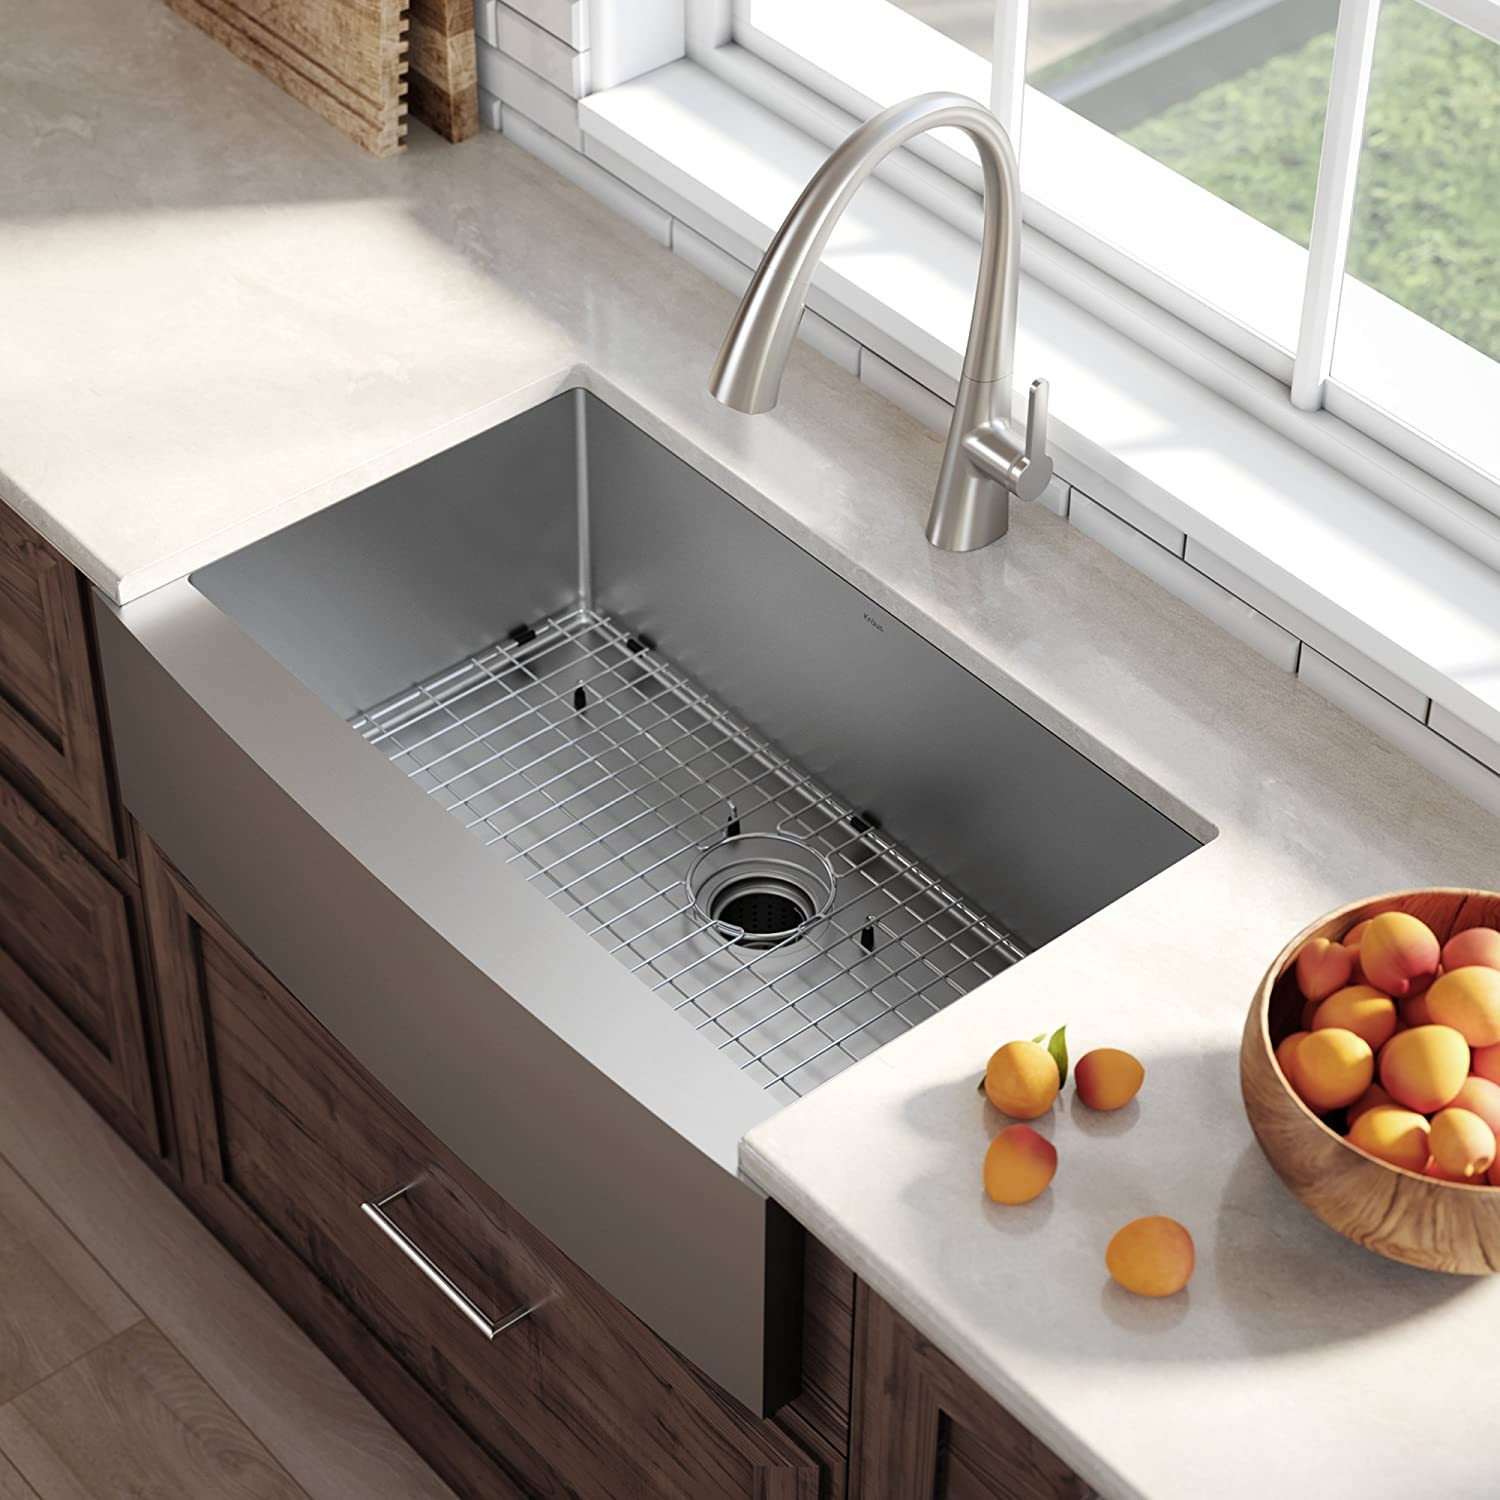 Best Farmhouse Sink 2018 (Uncle Paul\'s list of sinks that doesn\'t suck)